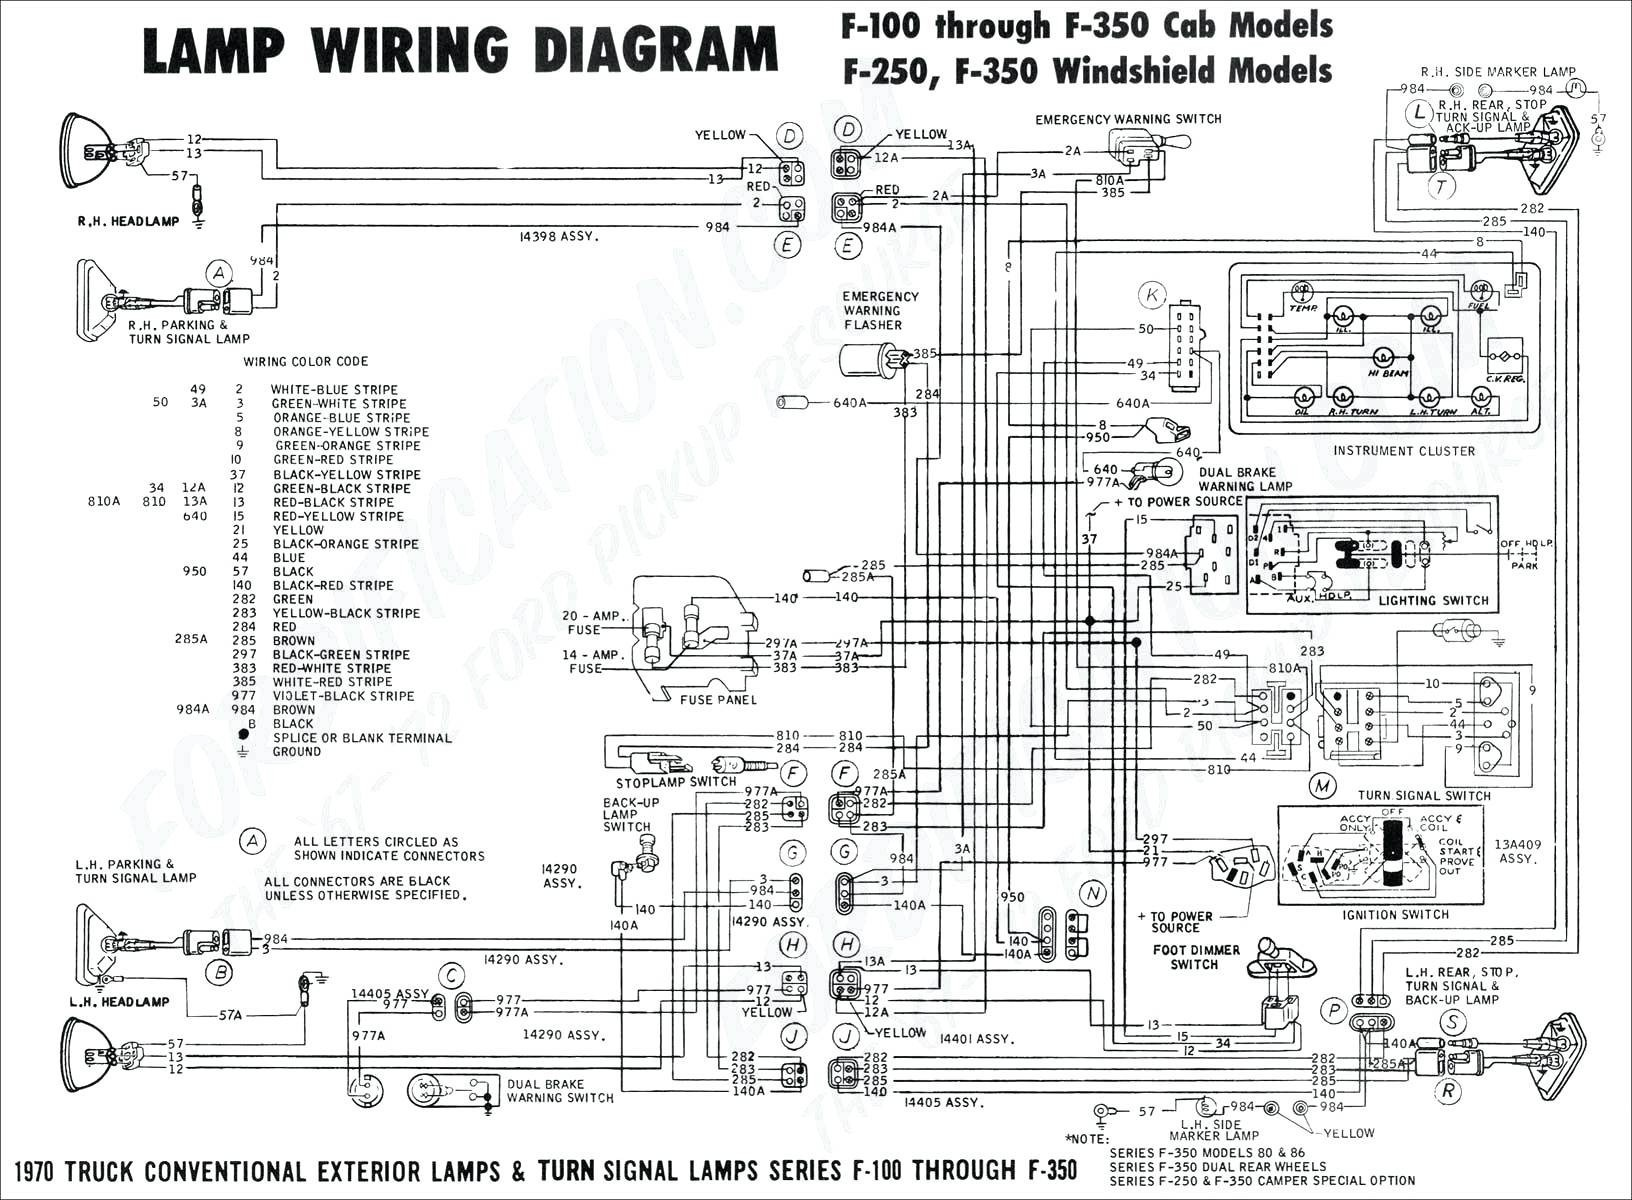 Porsche 911 Engine Diagram 2002 Porsche 911 Wiring Diagram Schematic Worksheet and Wiring Of Porsche 911 Engine Diagram